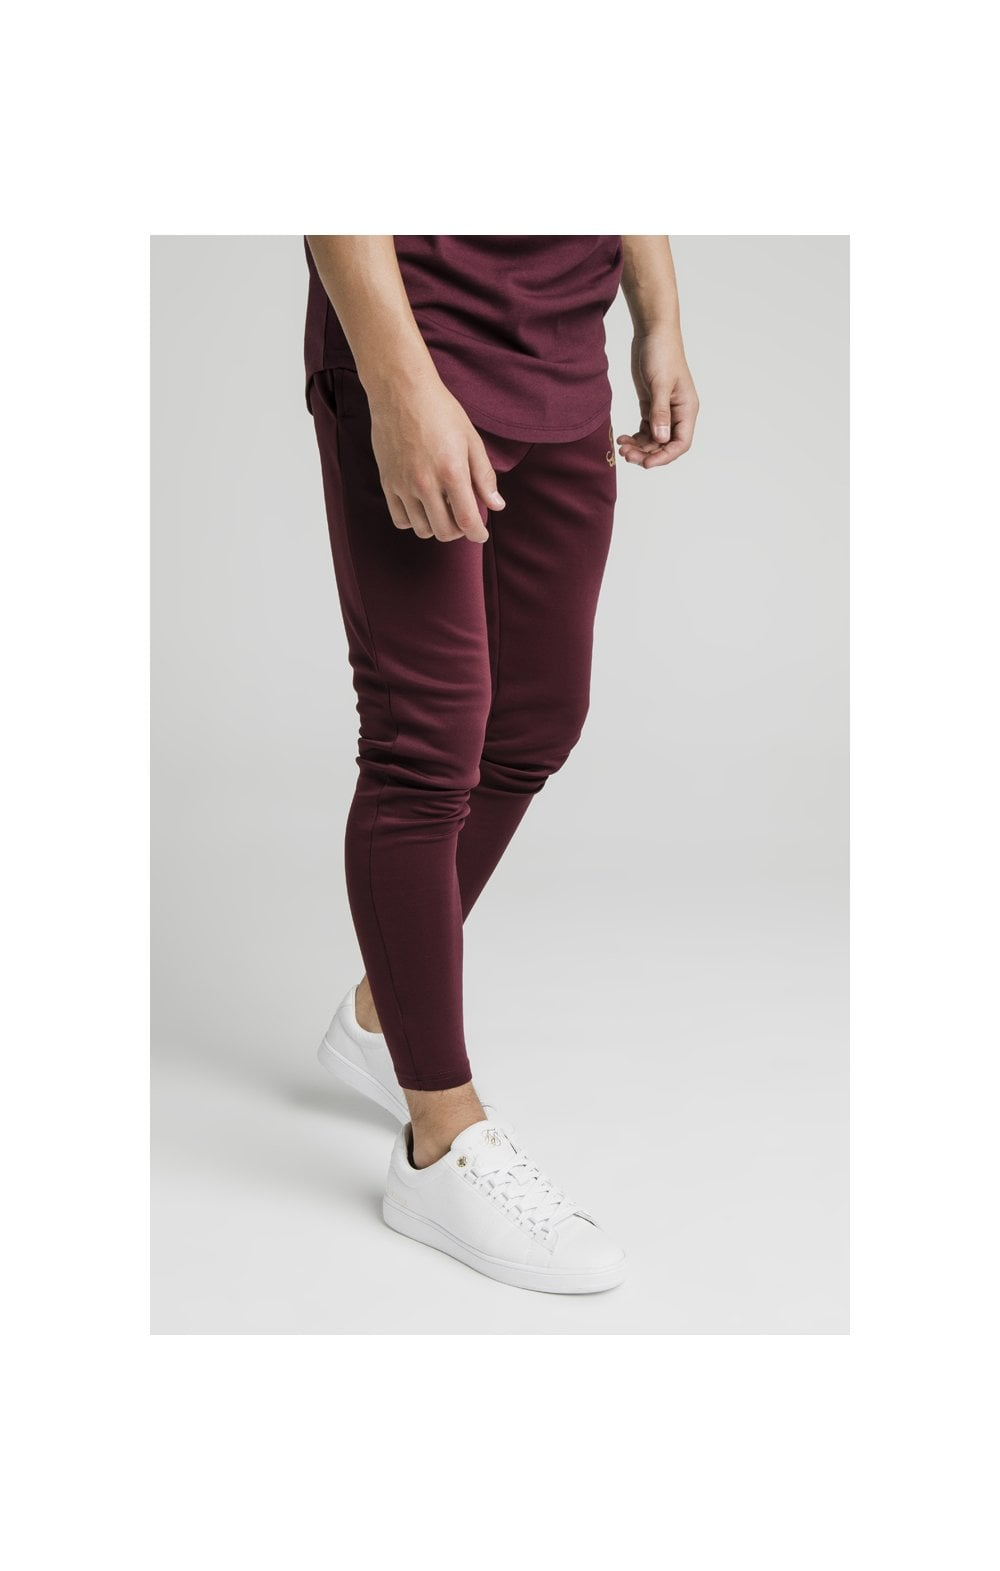 Load image into Gallery viewer, Illusive London Agility Track Pants - Burgundy (1)